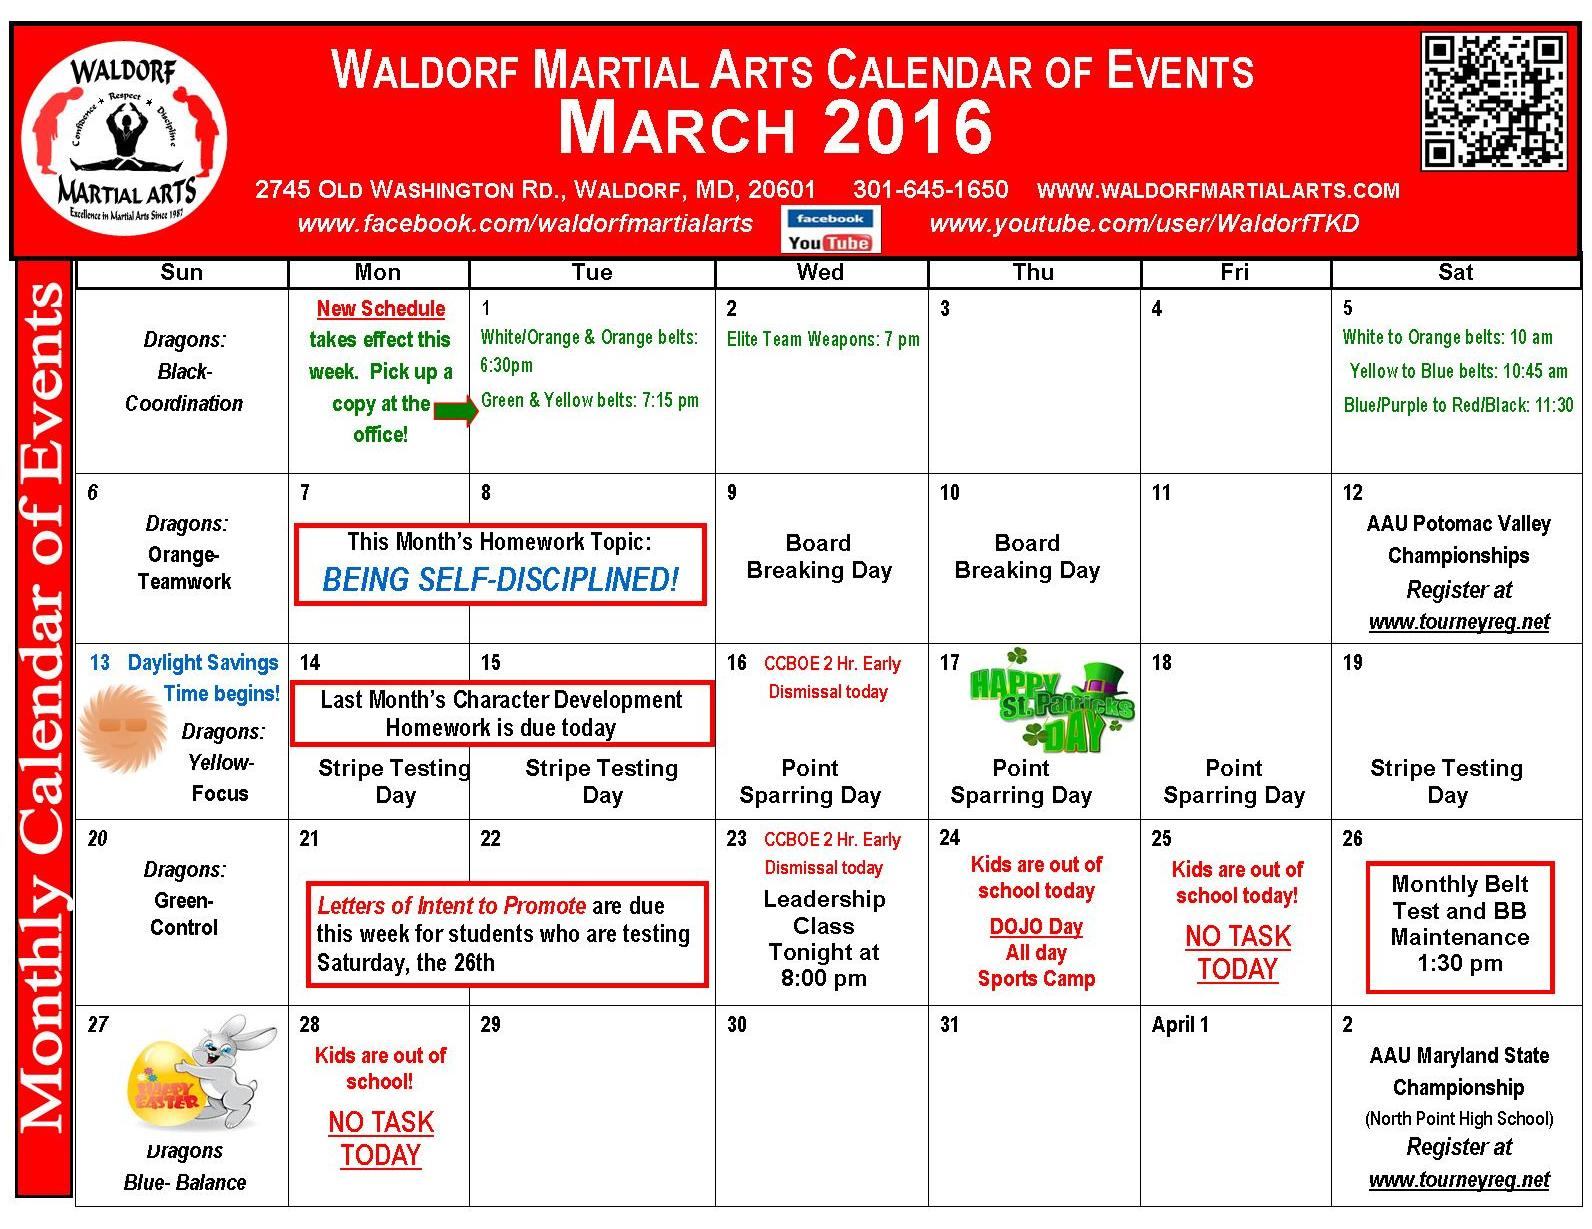 March 2016 calendar of events